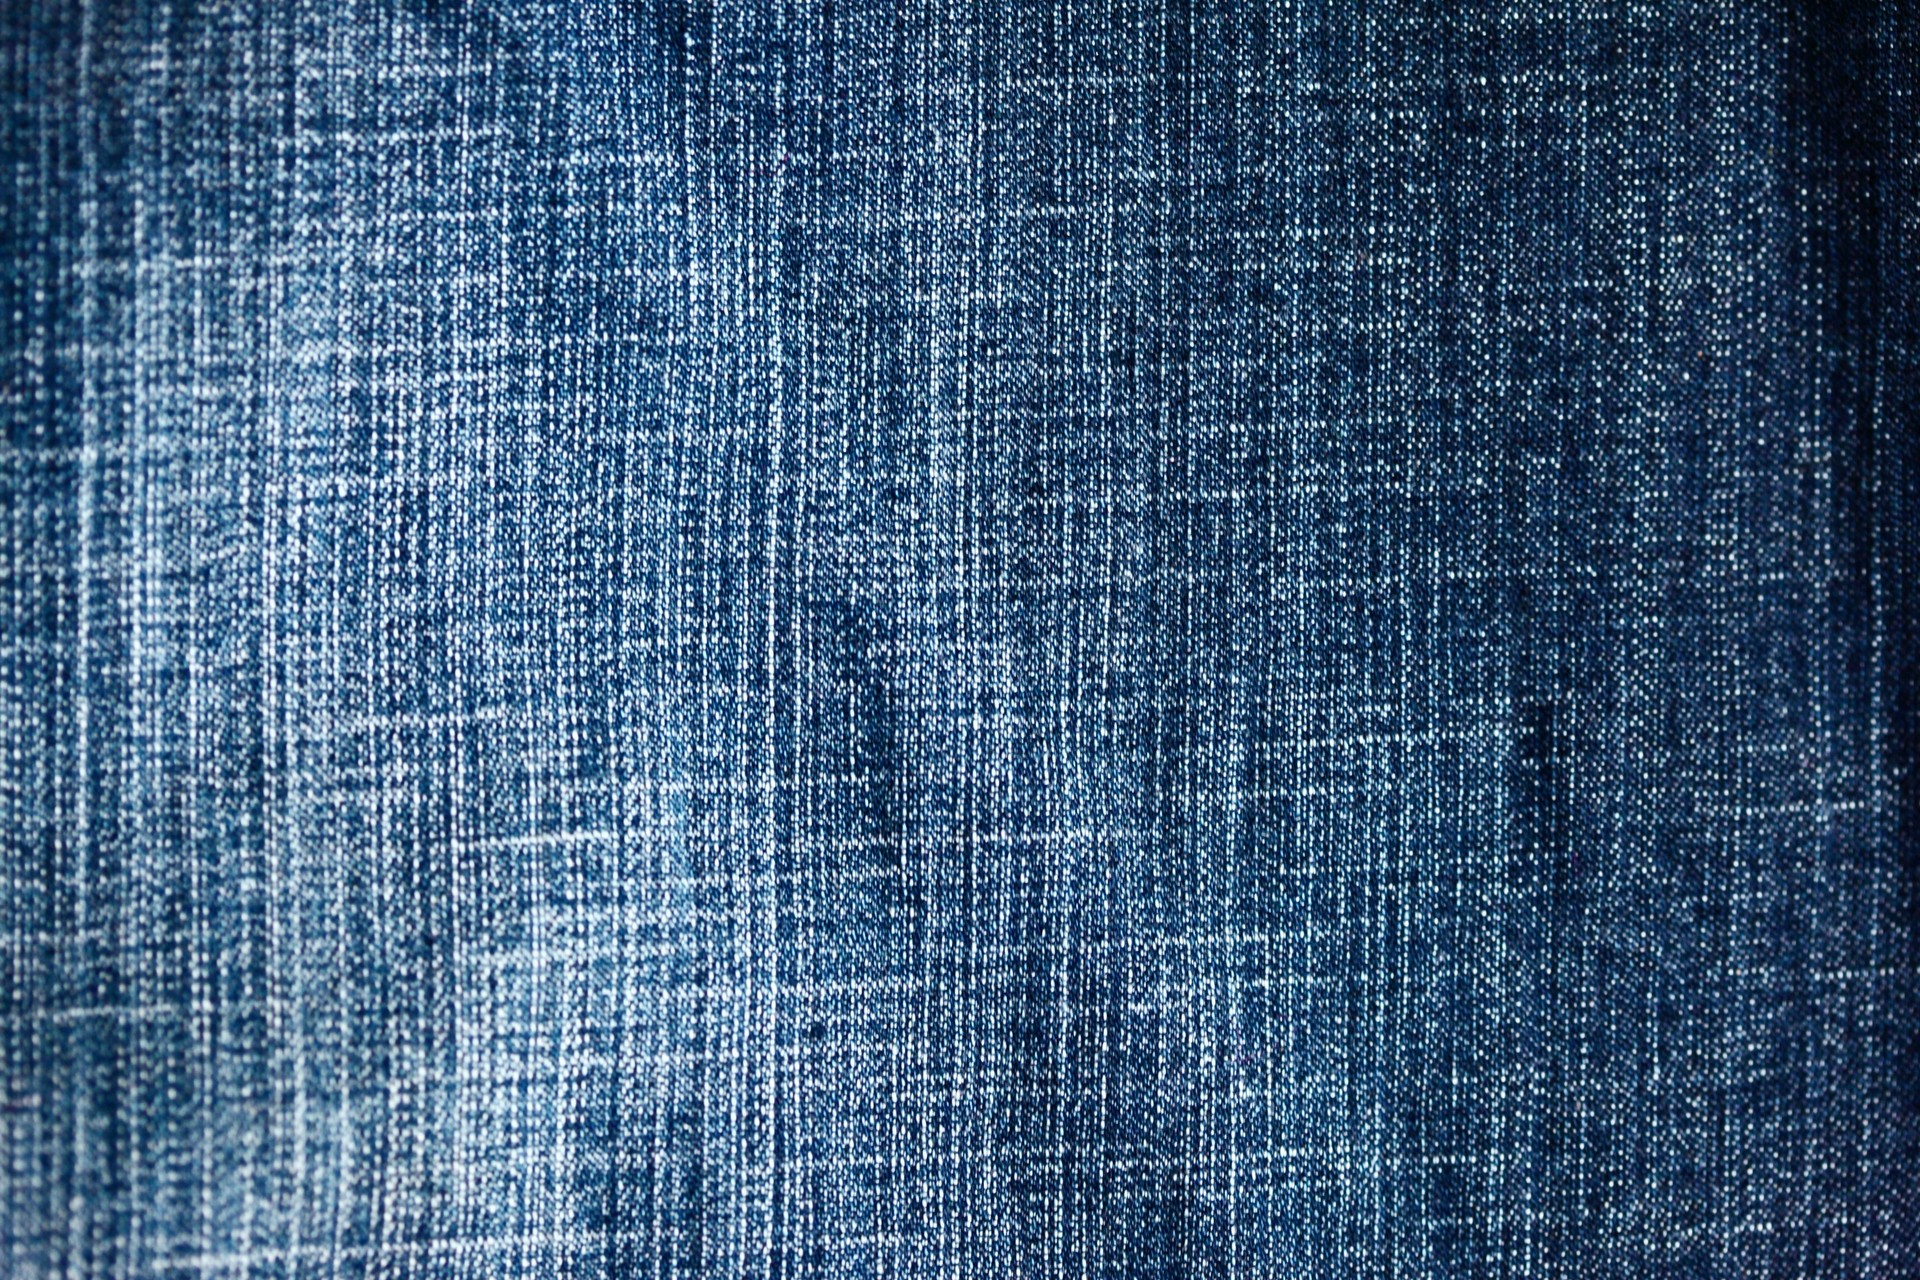 Blue Denim Fabric Texture - OGQ Backgrounds HD for Fabric Texture Pattern Hd  557yll